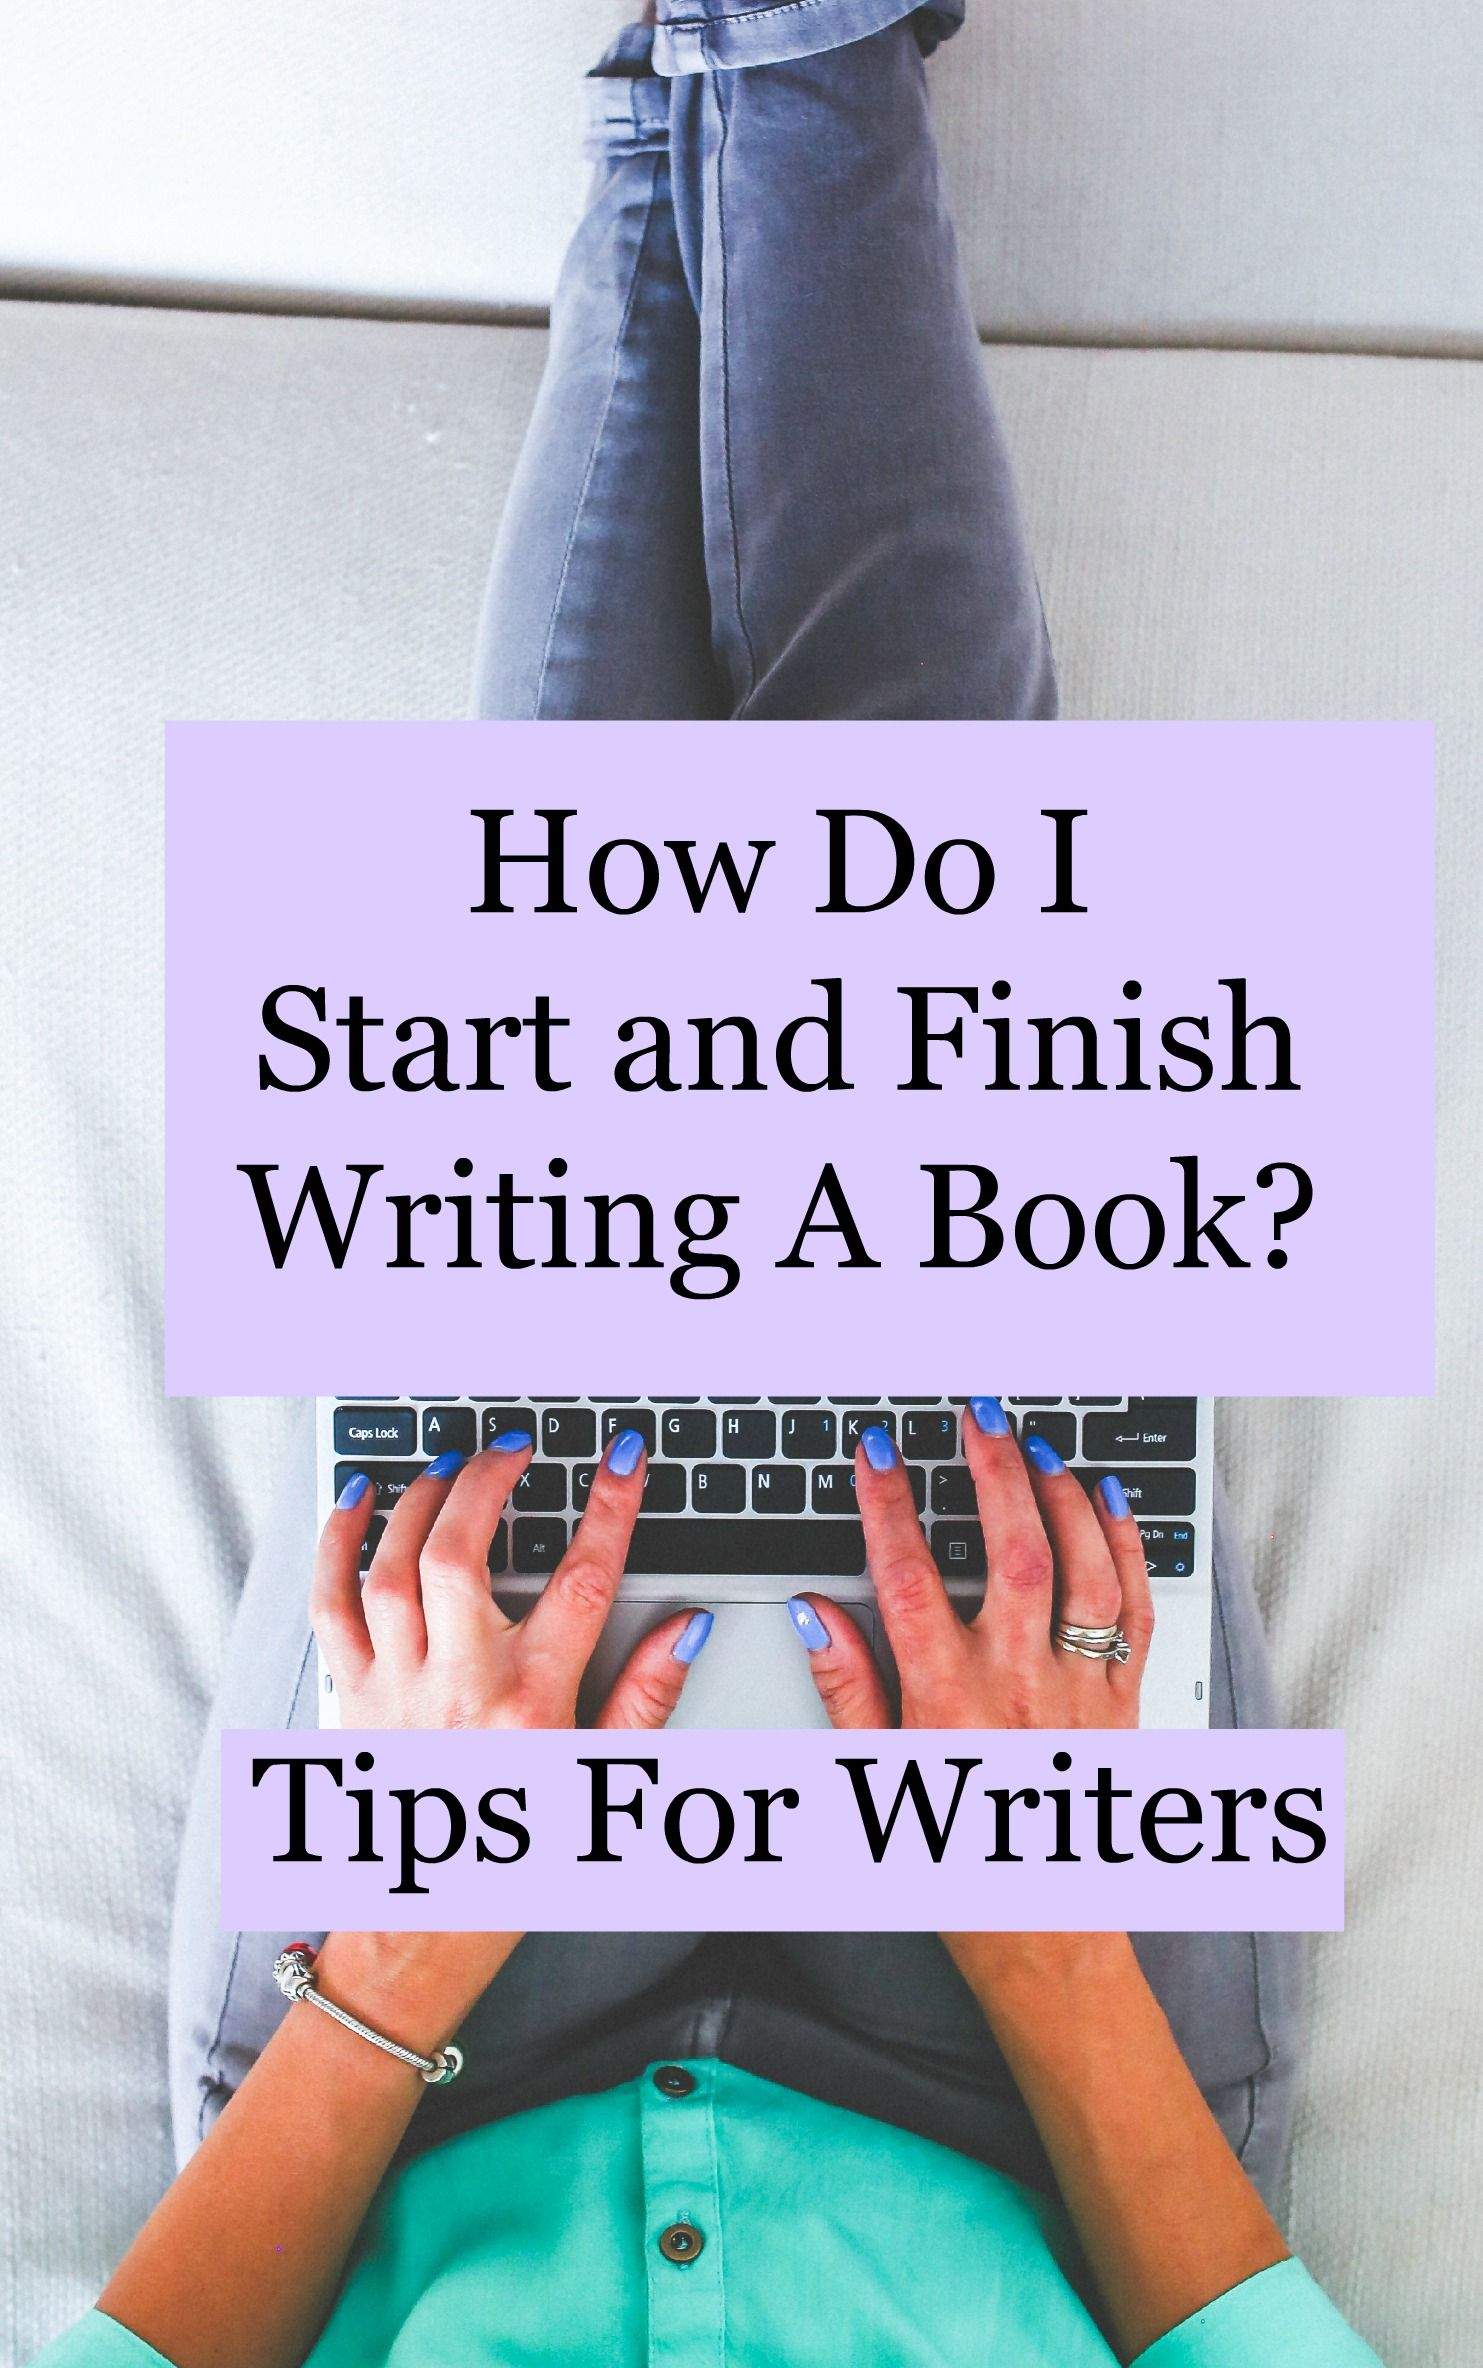 how do i start and finish writing a book  tips for writers